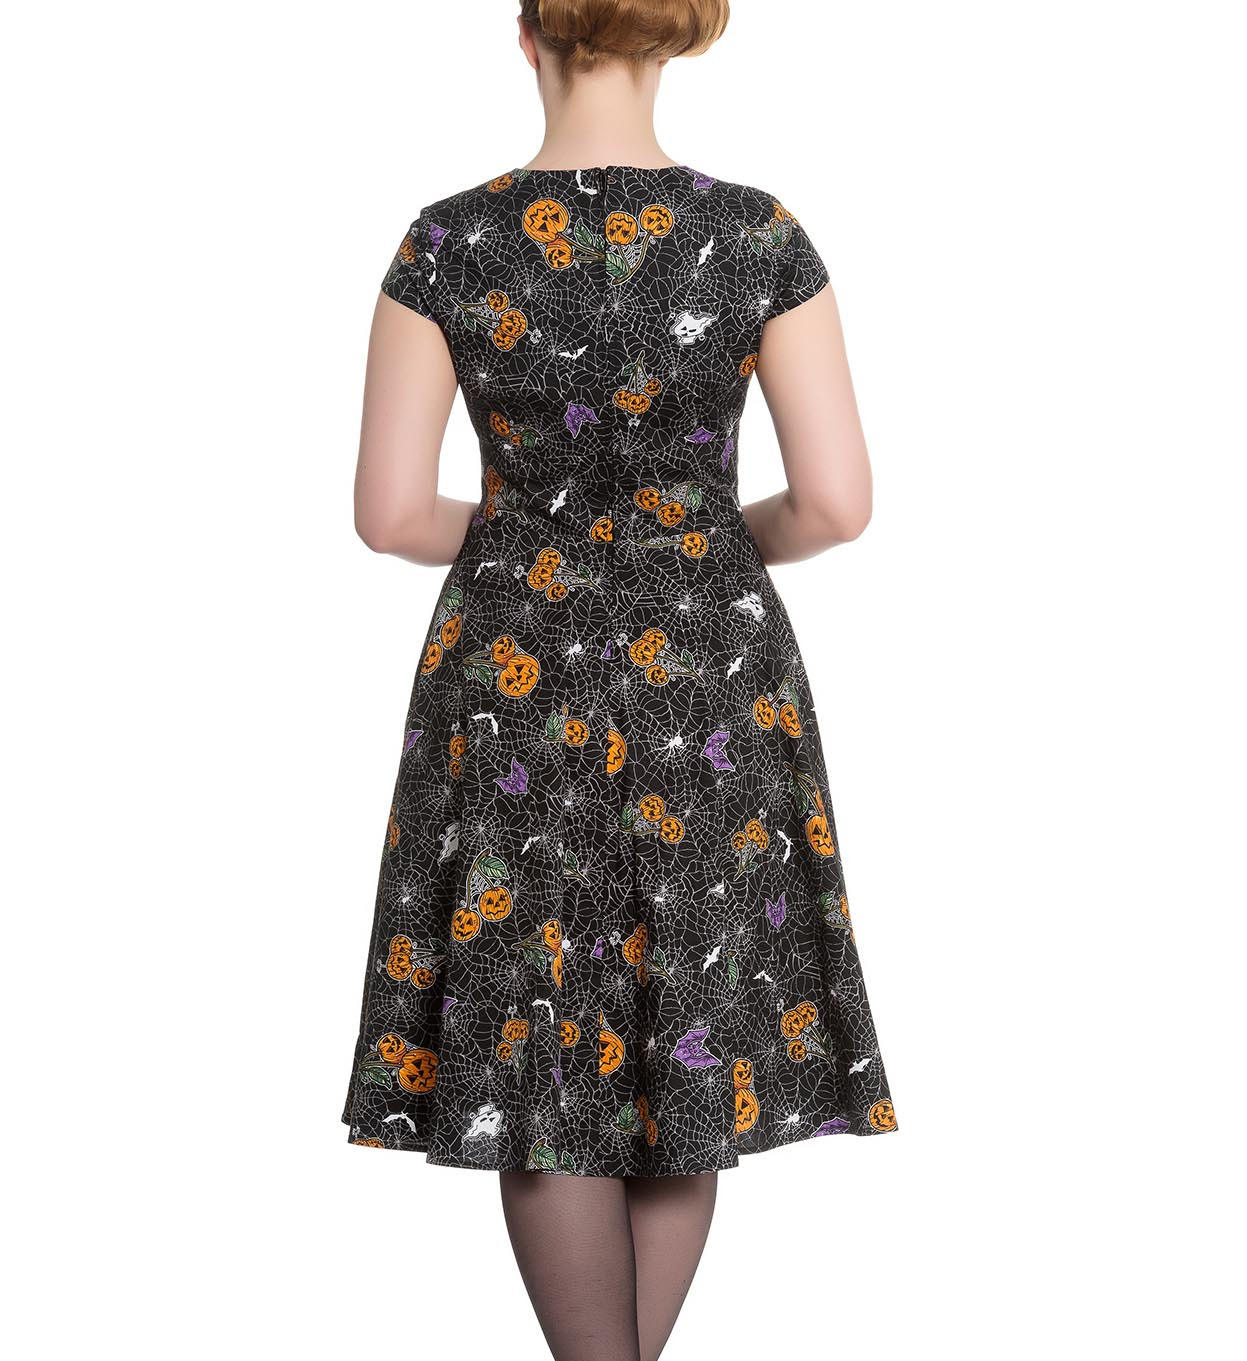 Hell-Bunny-Black-Pinup-50s-Goth-Webs-Dress-HARLOW-Halloween-All-Sizes thumbnail 29